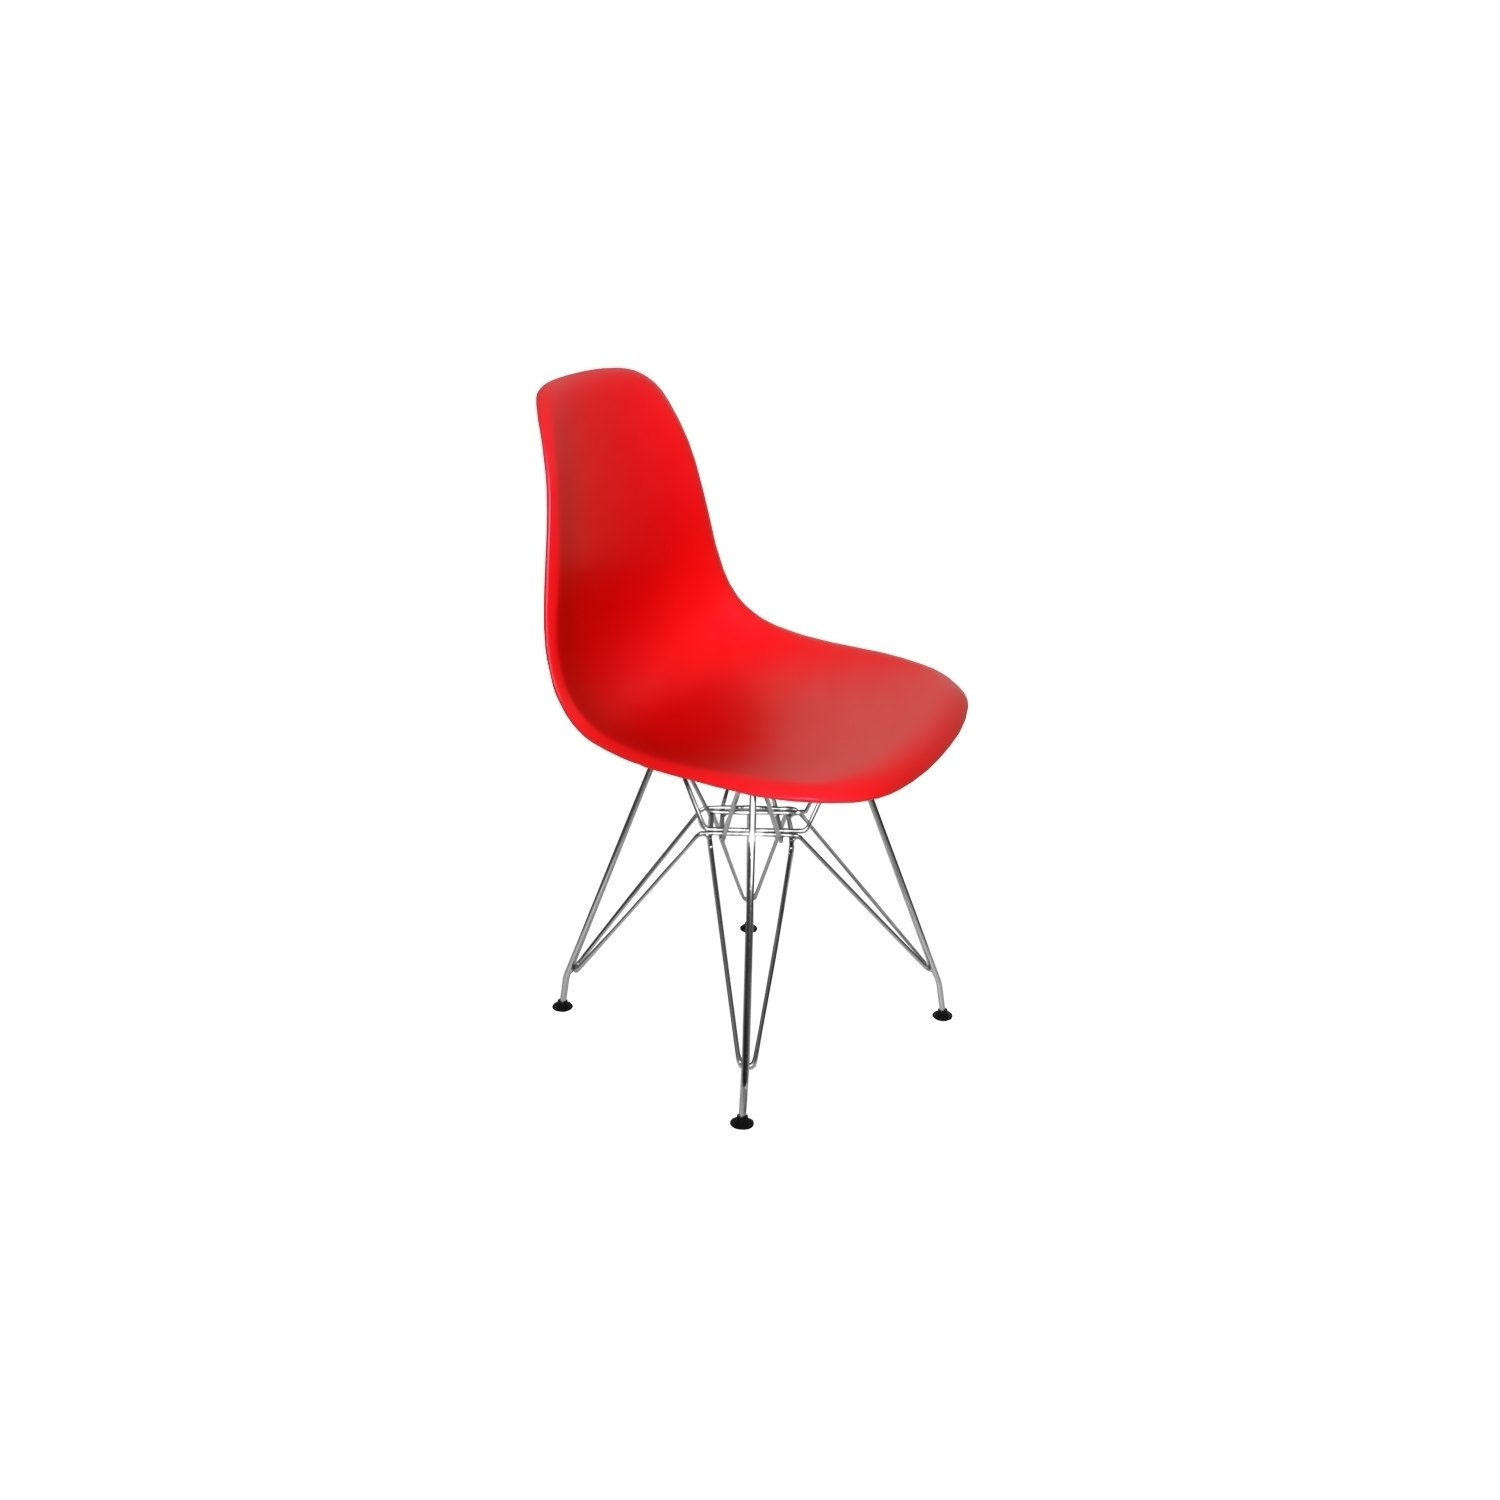 comprar silla tower chrome roja sillas baratas online